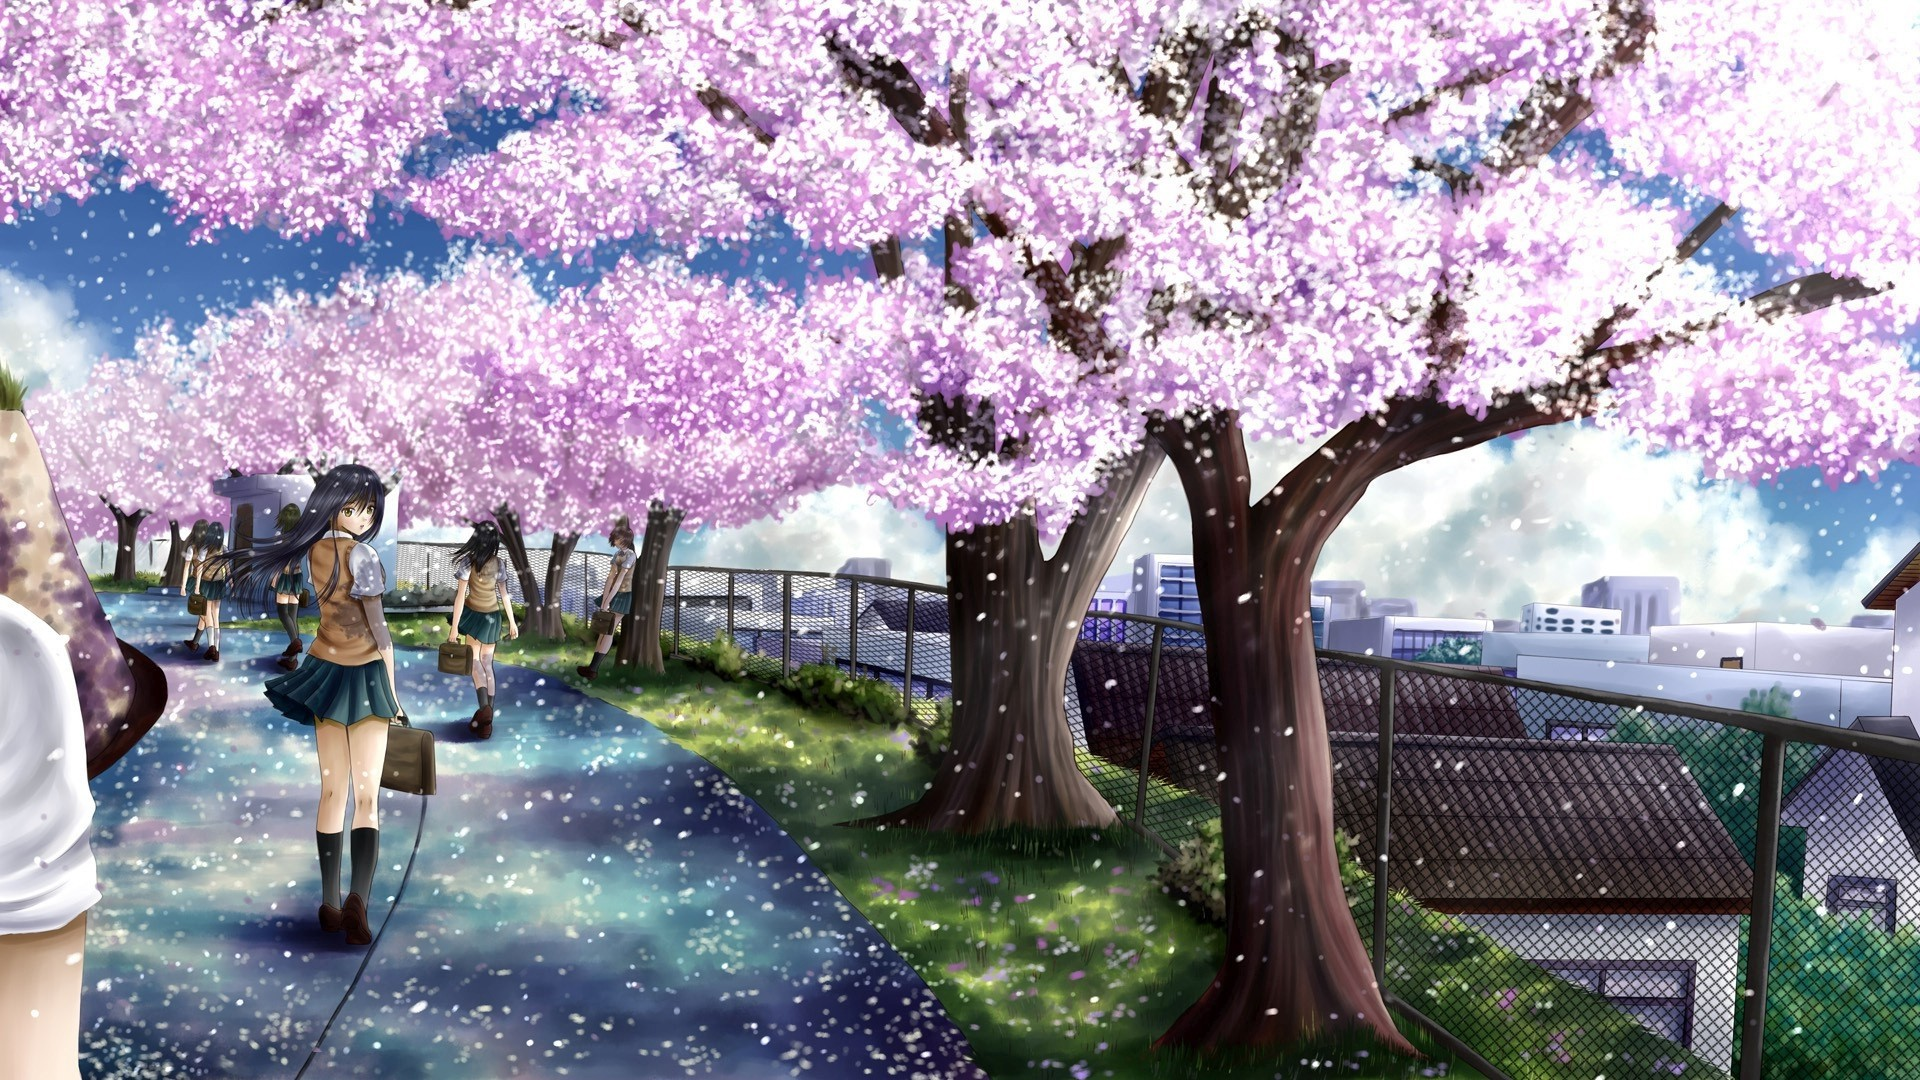 uploads/2014/11/cherry-blossom-anime-hd .